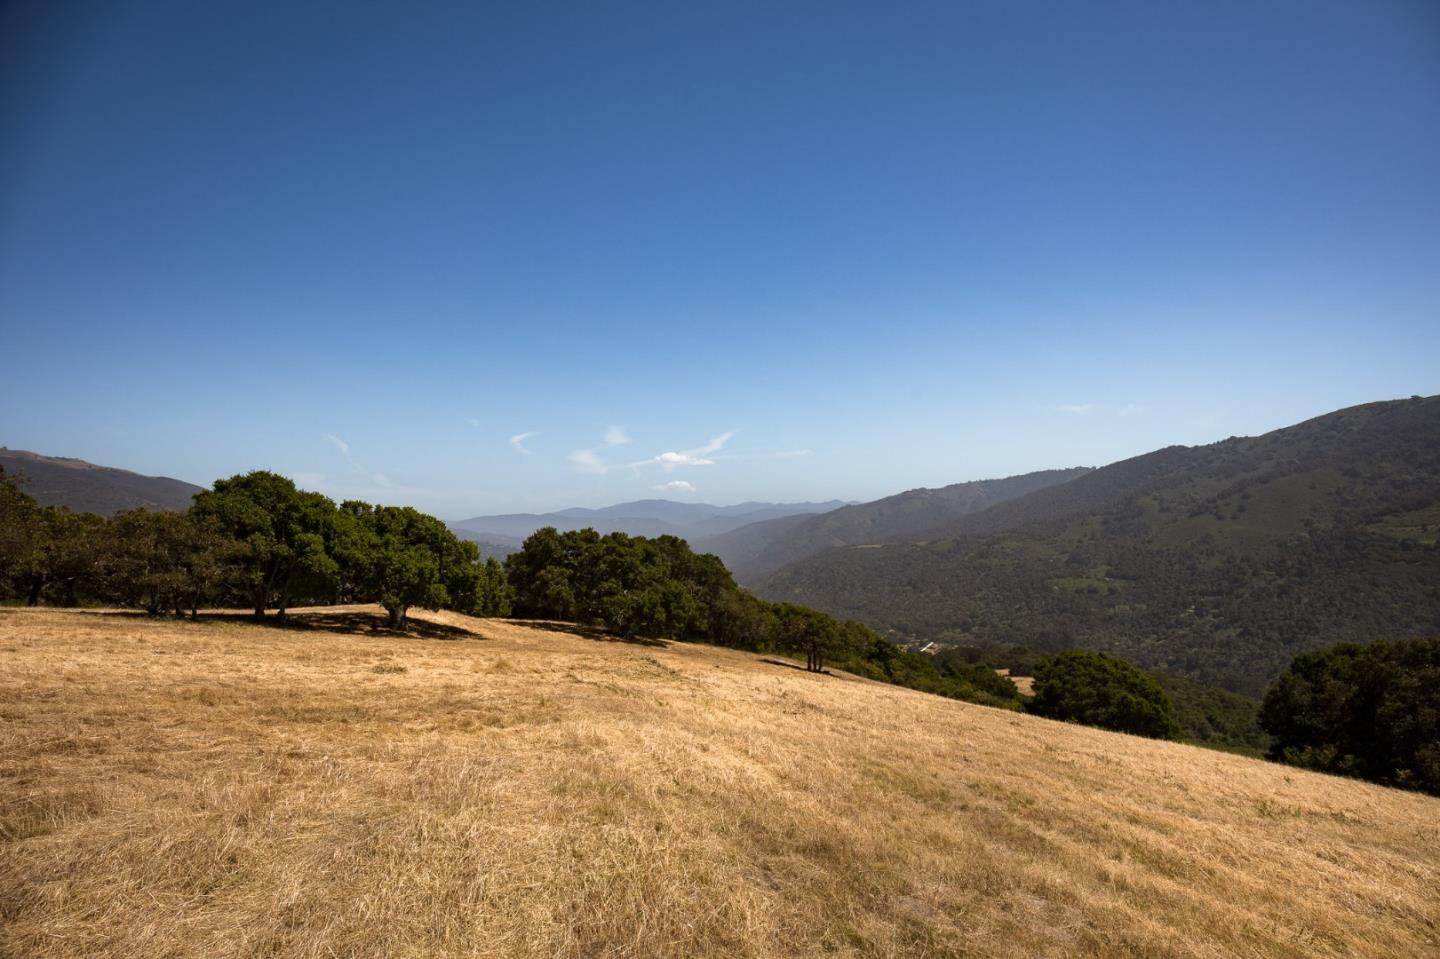 Property for sale at 27650 Via Quintana, Carmel Valley,  CA 93924